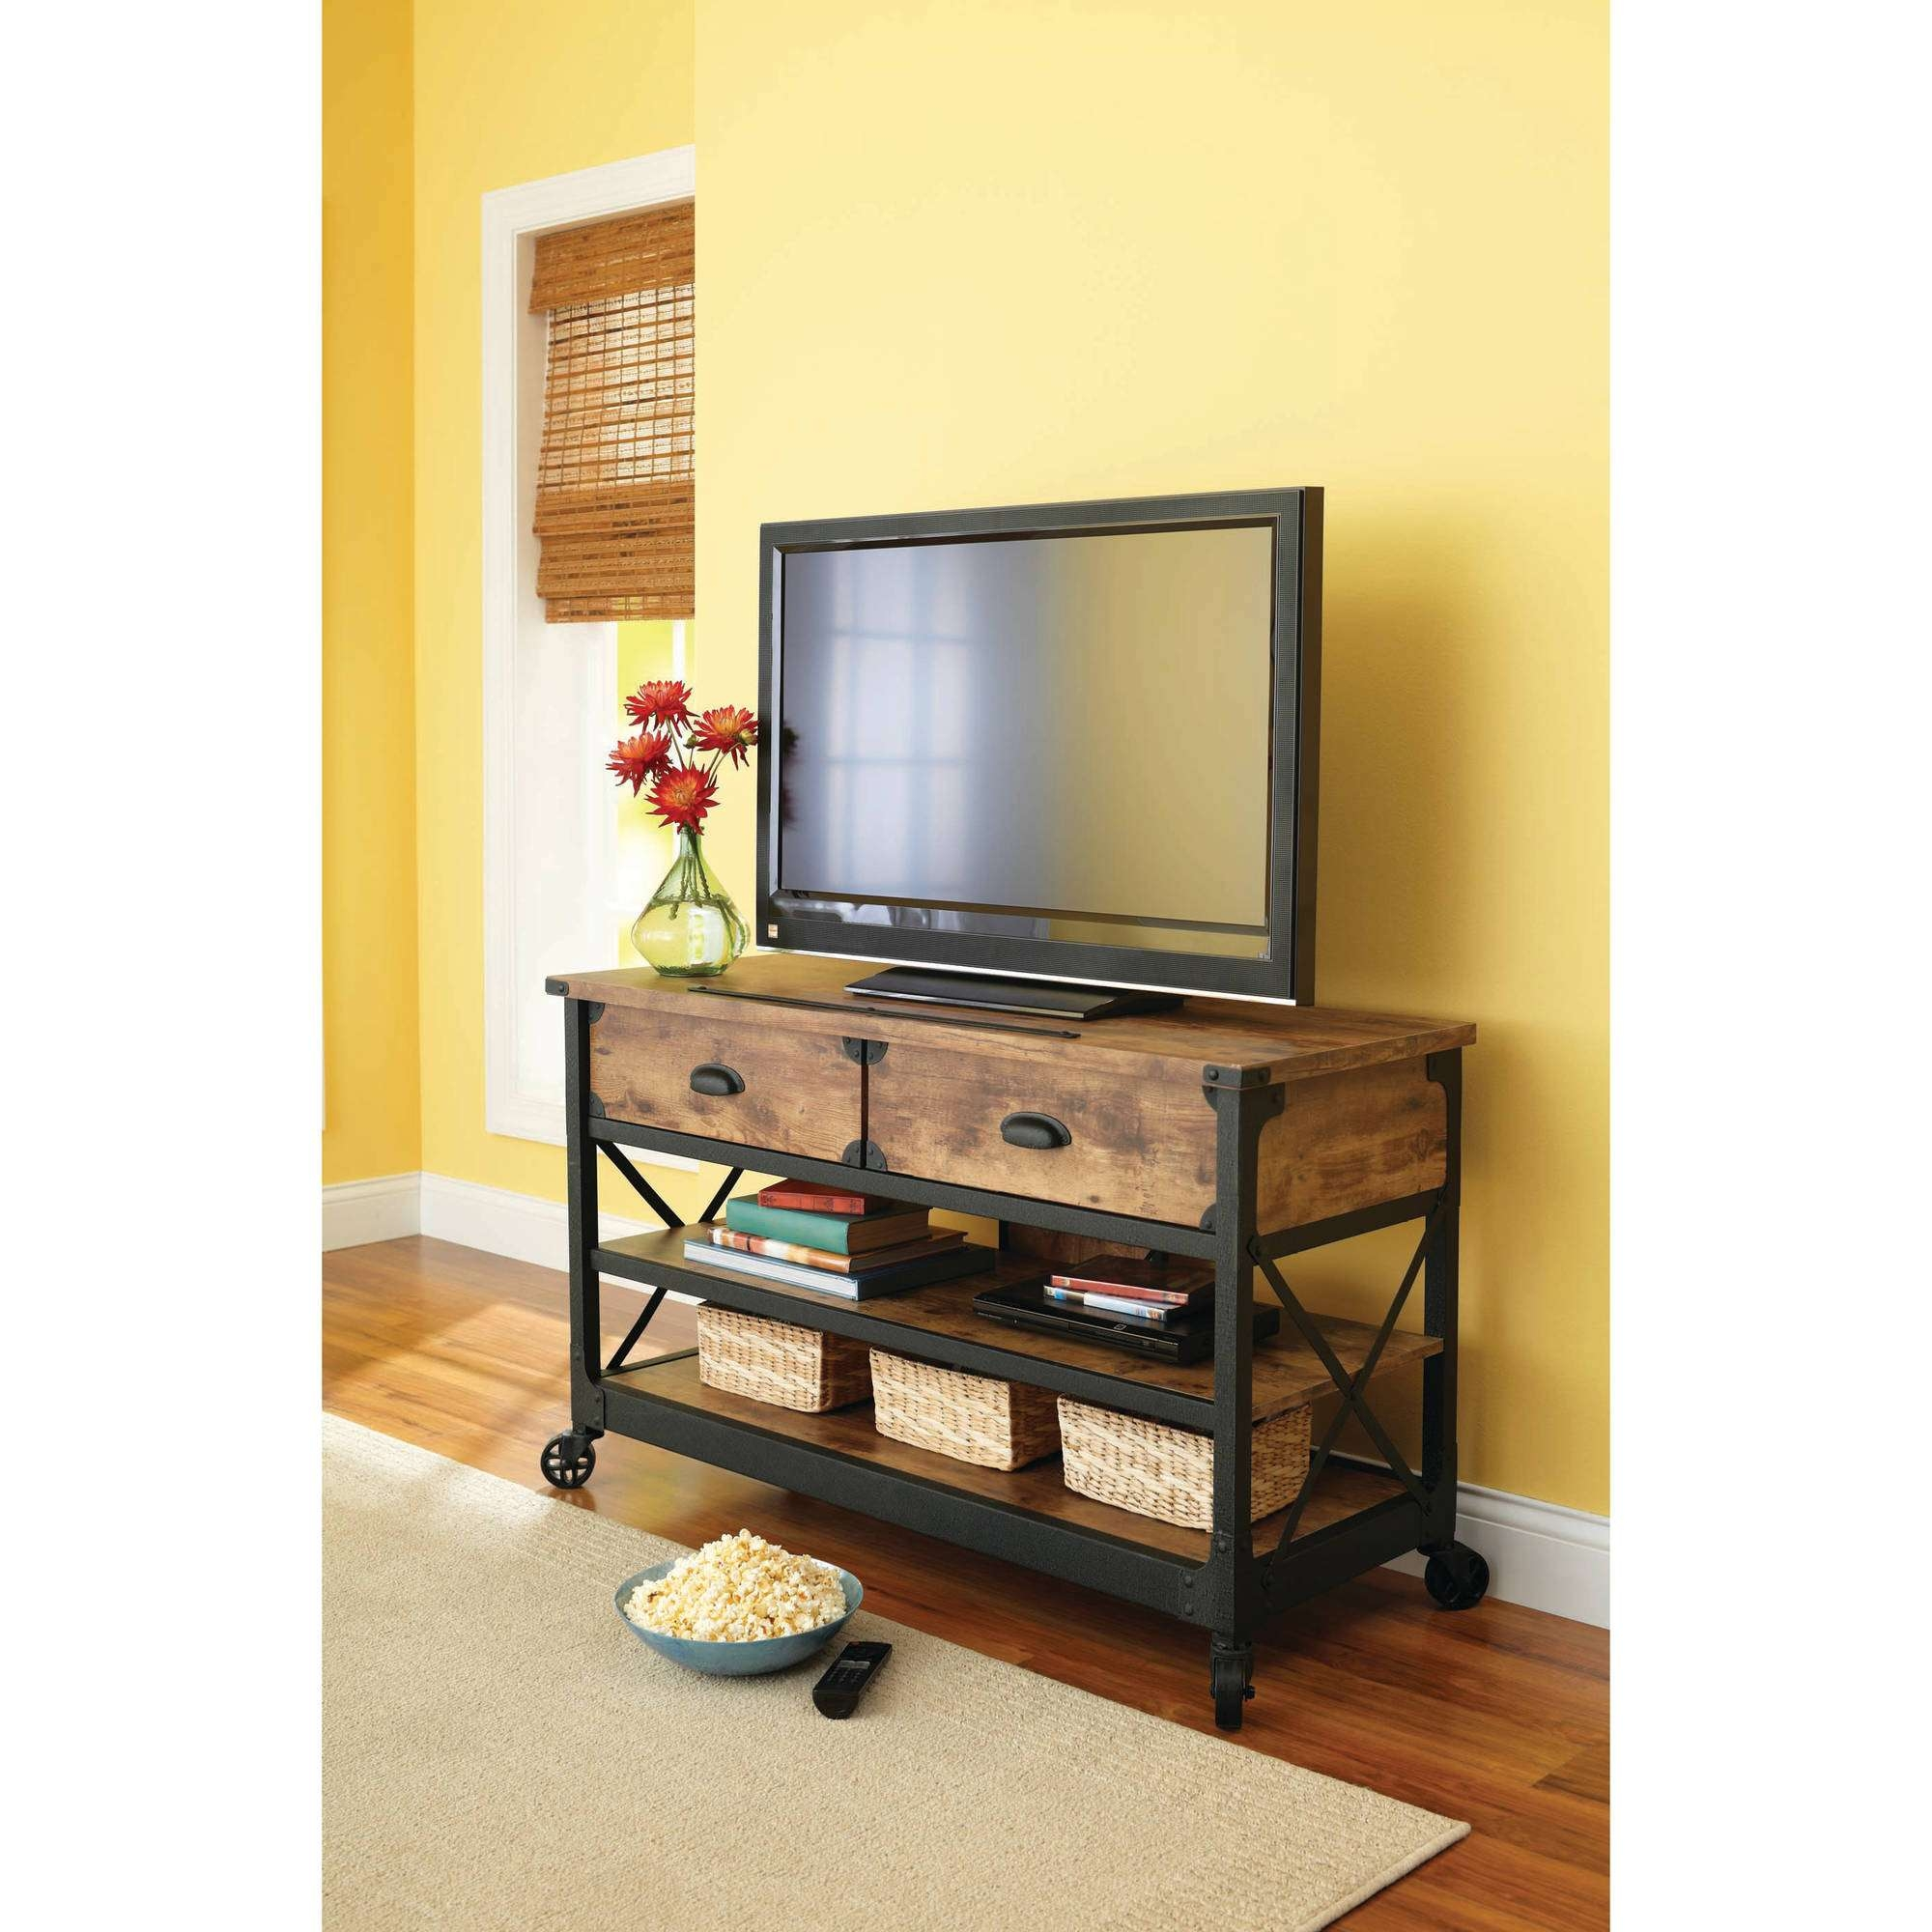 Tv : Country Tv Stands Stunning Country Door Tv Stands' Gripping Throughout French Country Tv Stands (View 12 of 15)